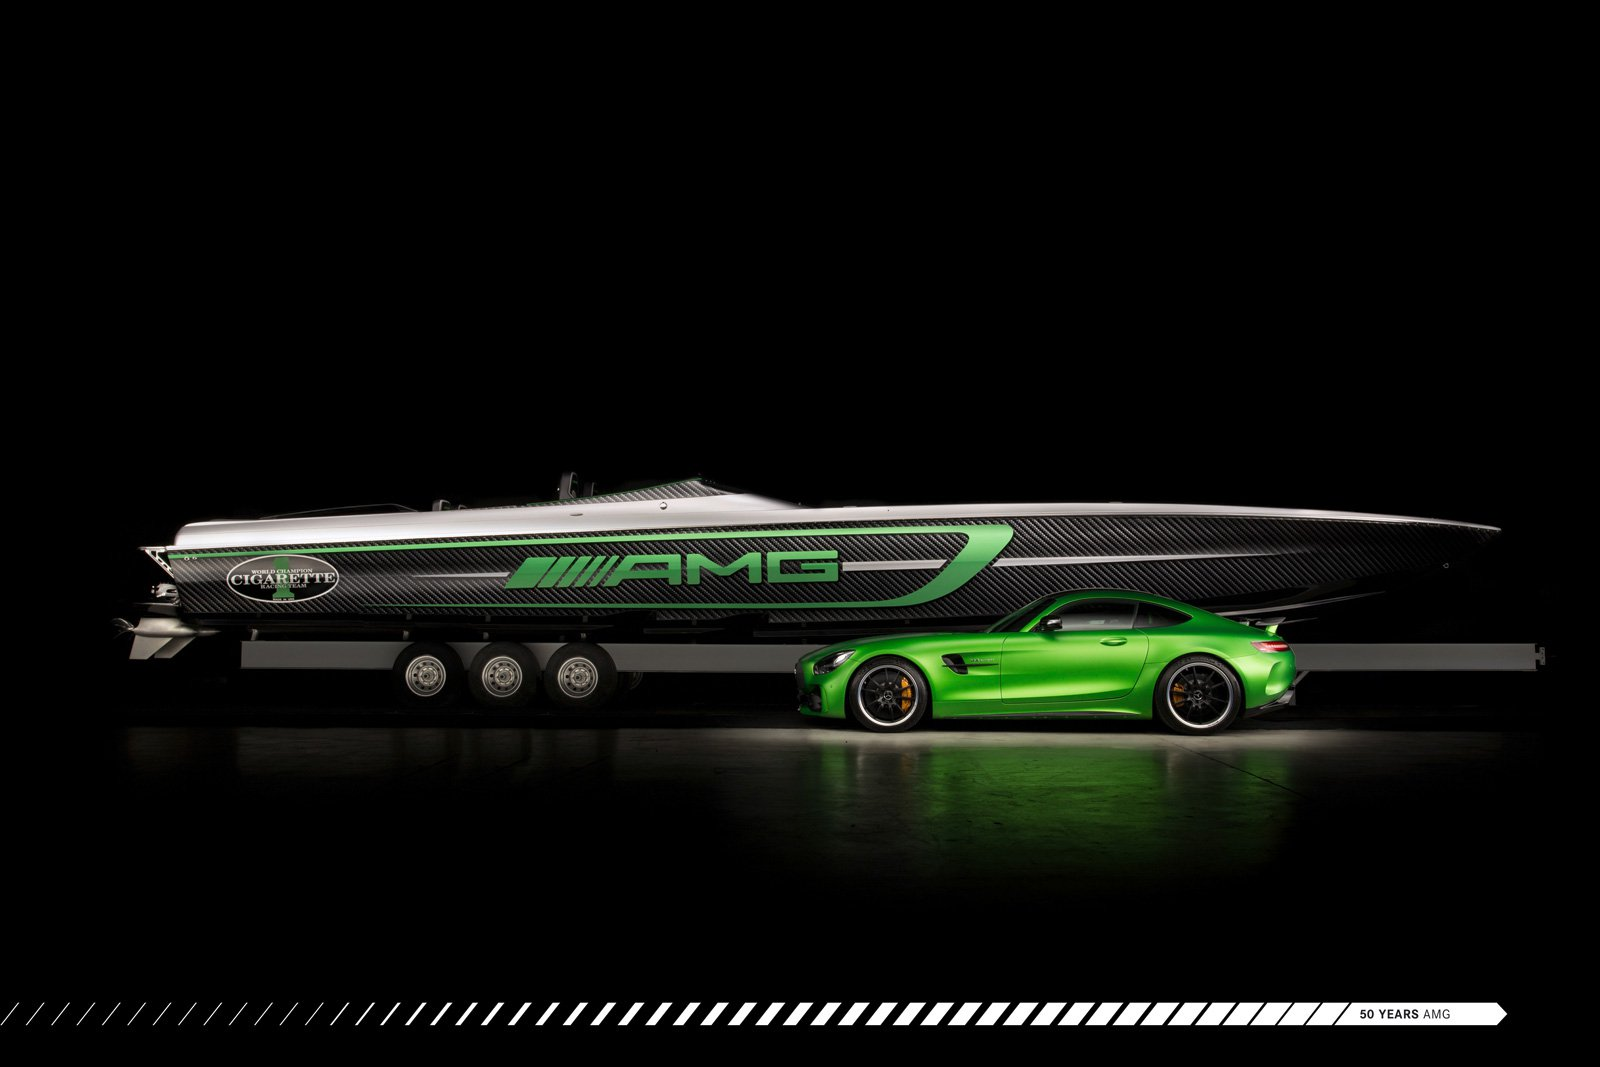 Smoking With Cigarettes: Latest Mercedes-AMG Boat is a High Performance Homage